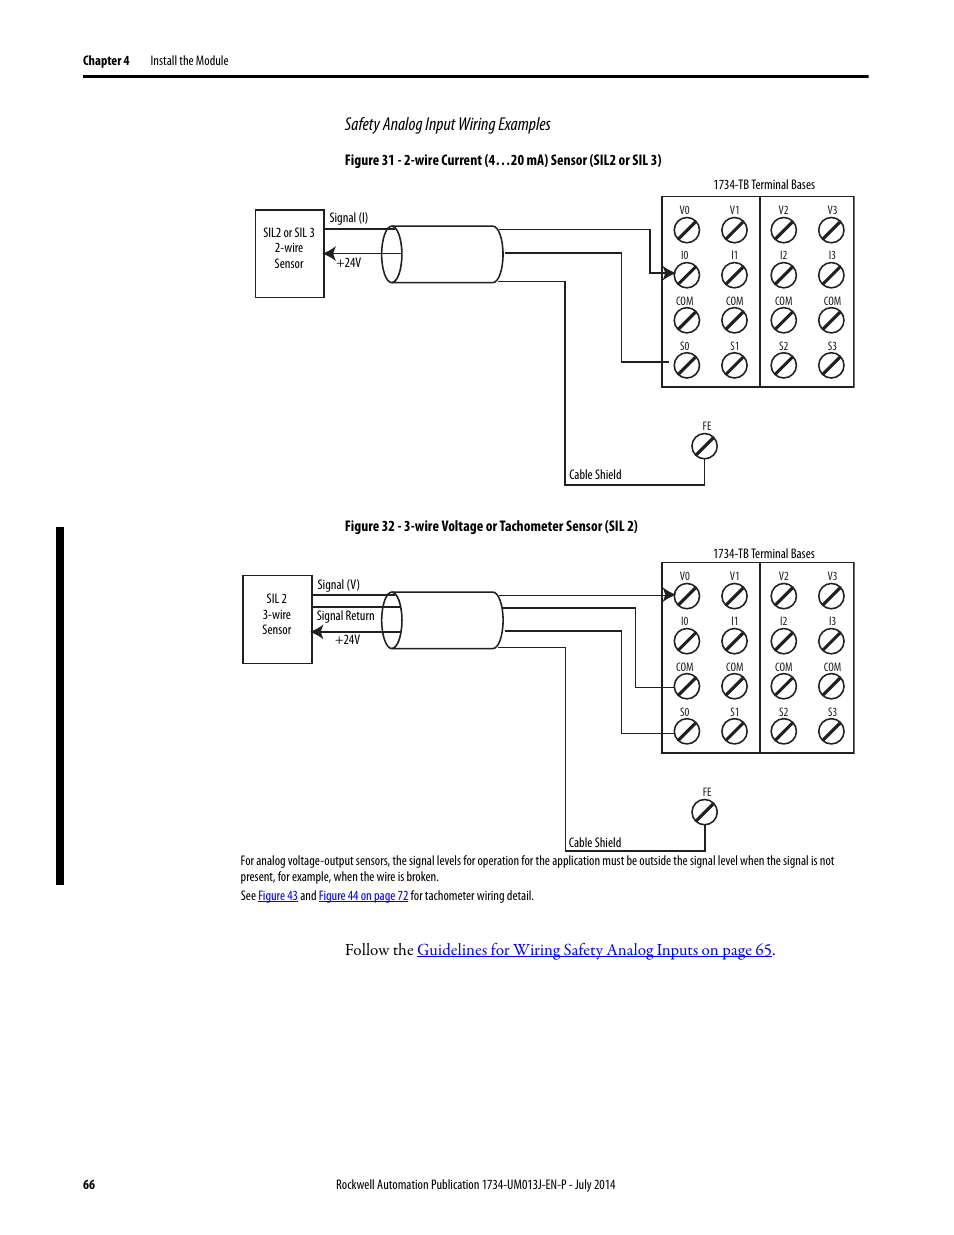 Safety Analog Input Wiring Examples